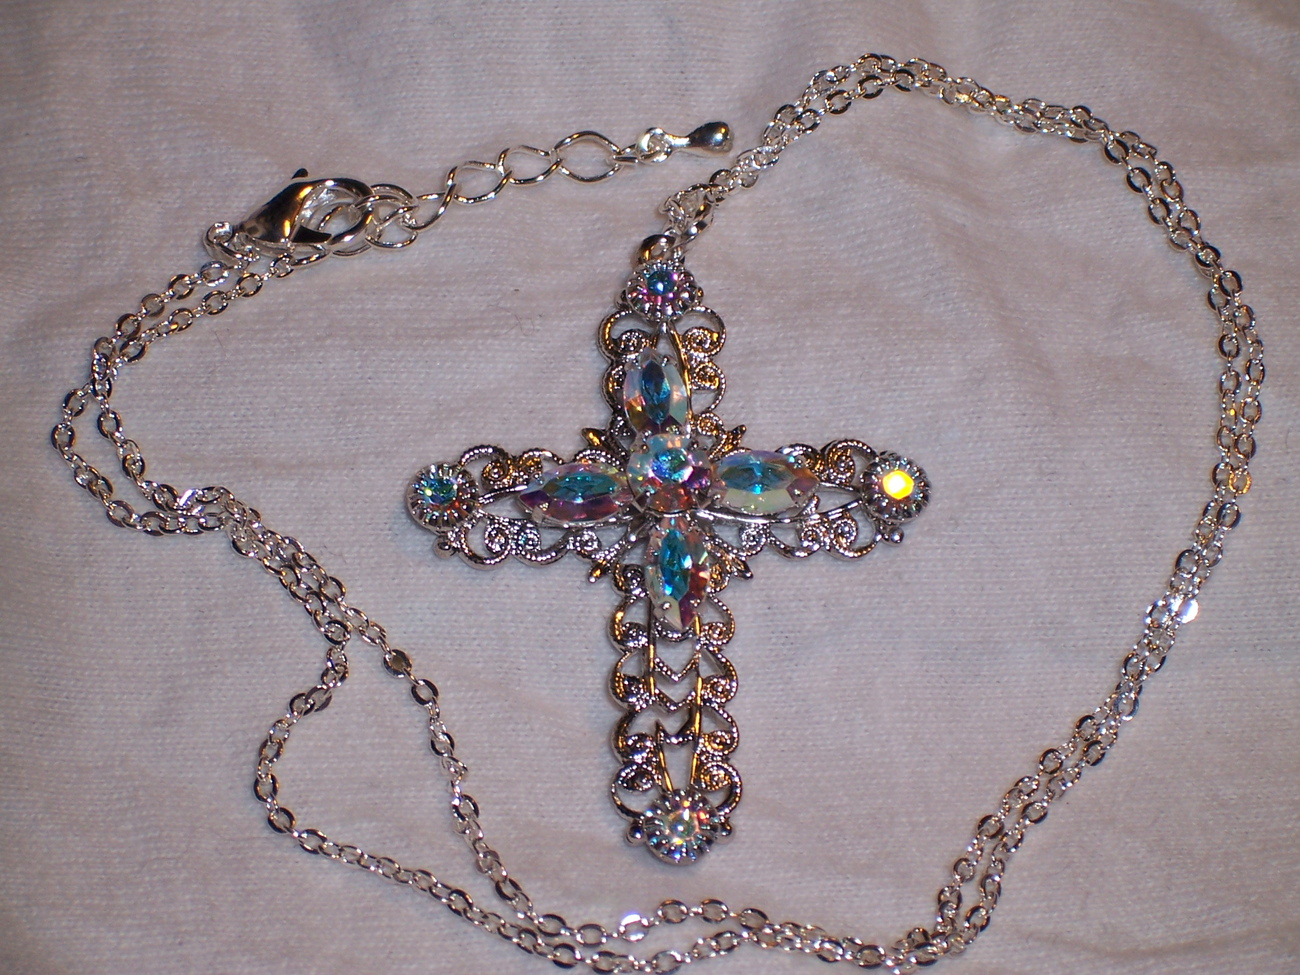 SWAROVSKI CROSS PENDANT NECKLACE - iOffer: A Place to Buy, Sell